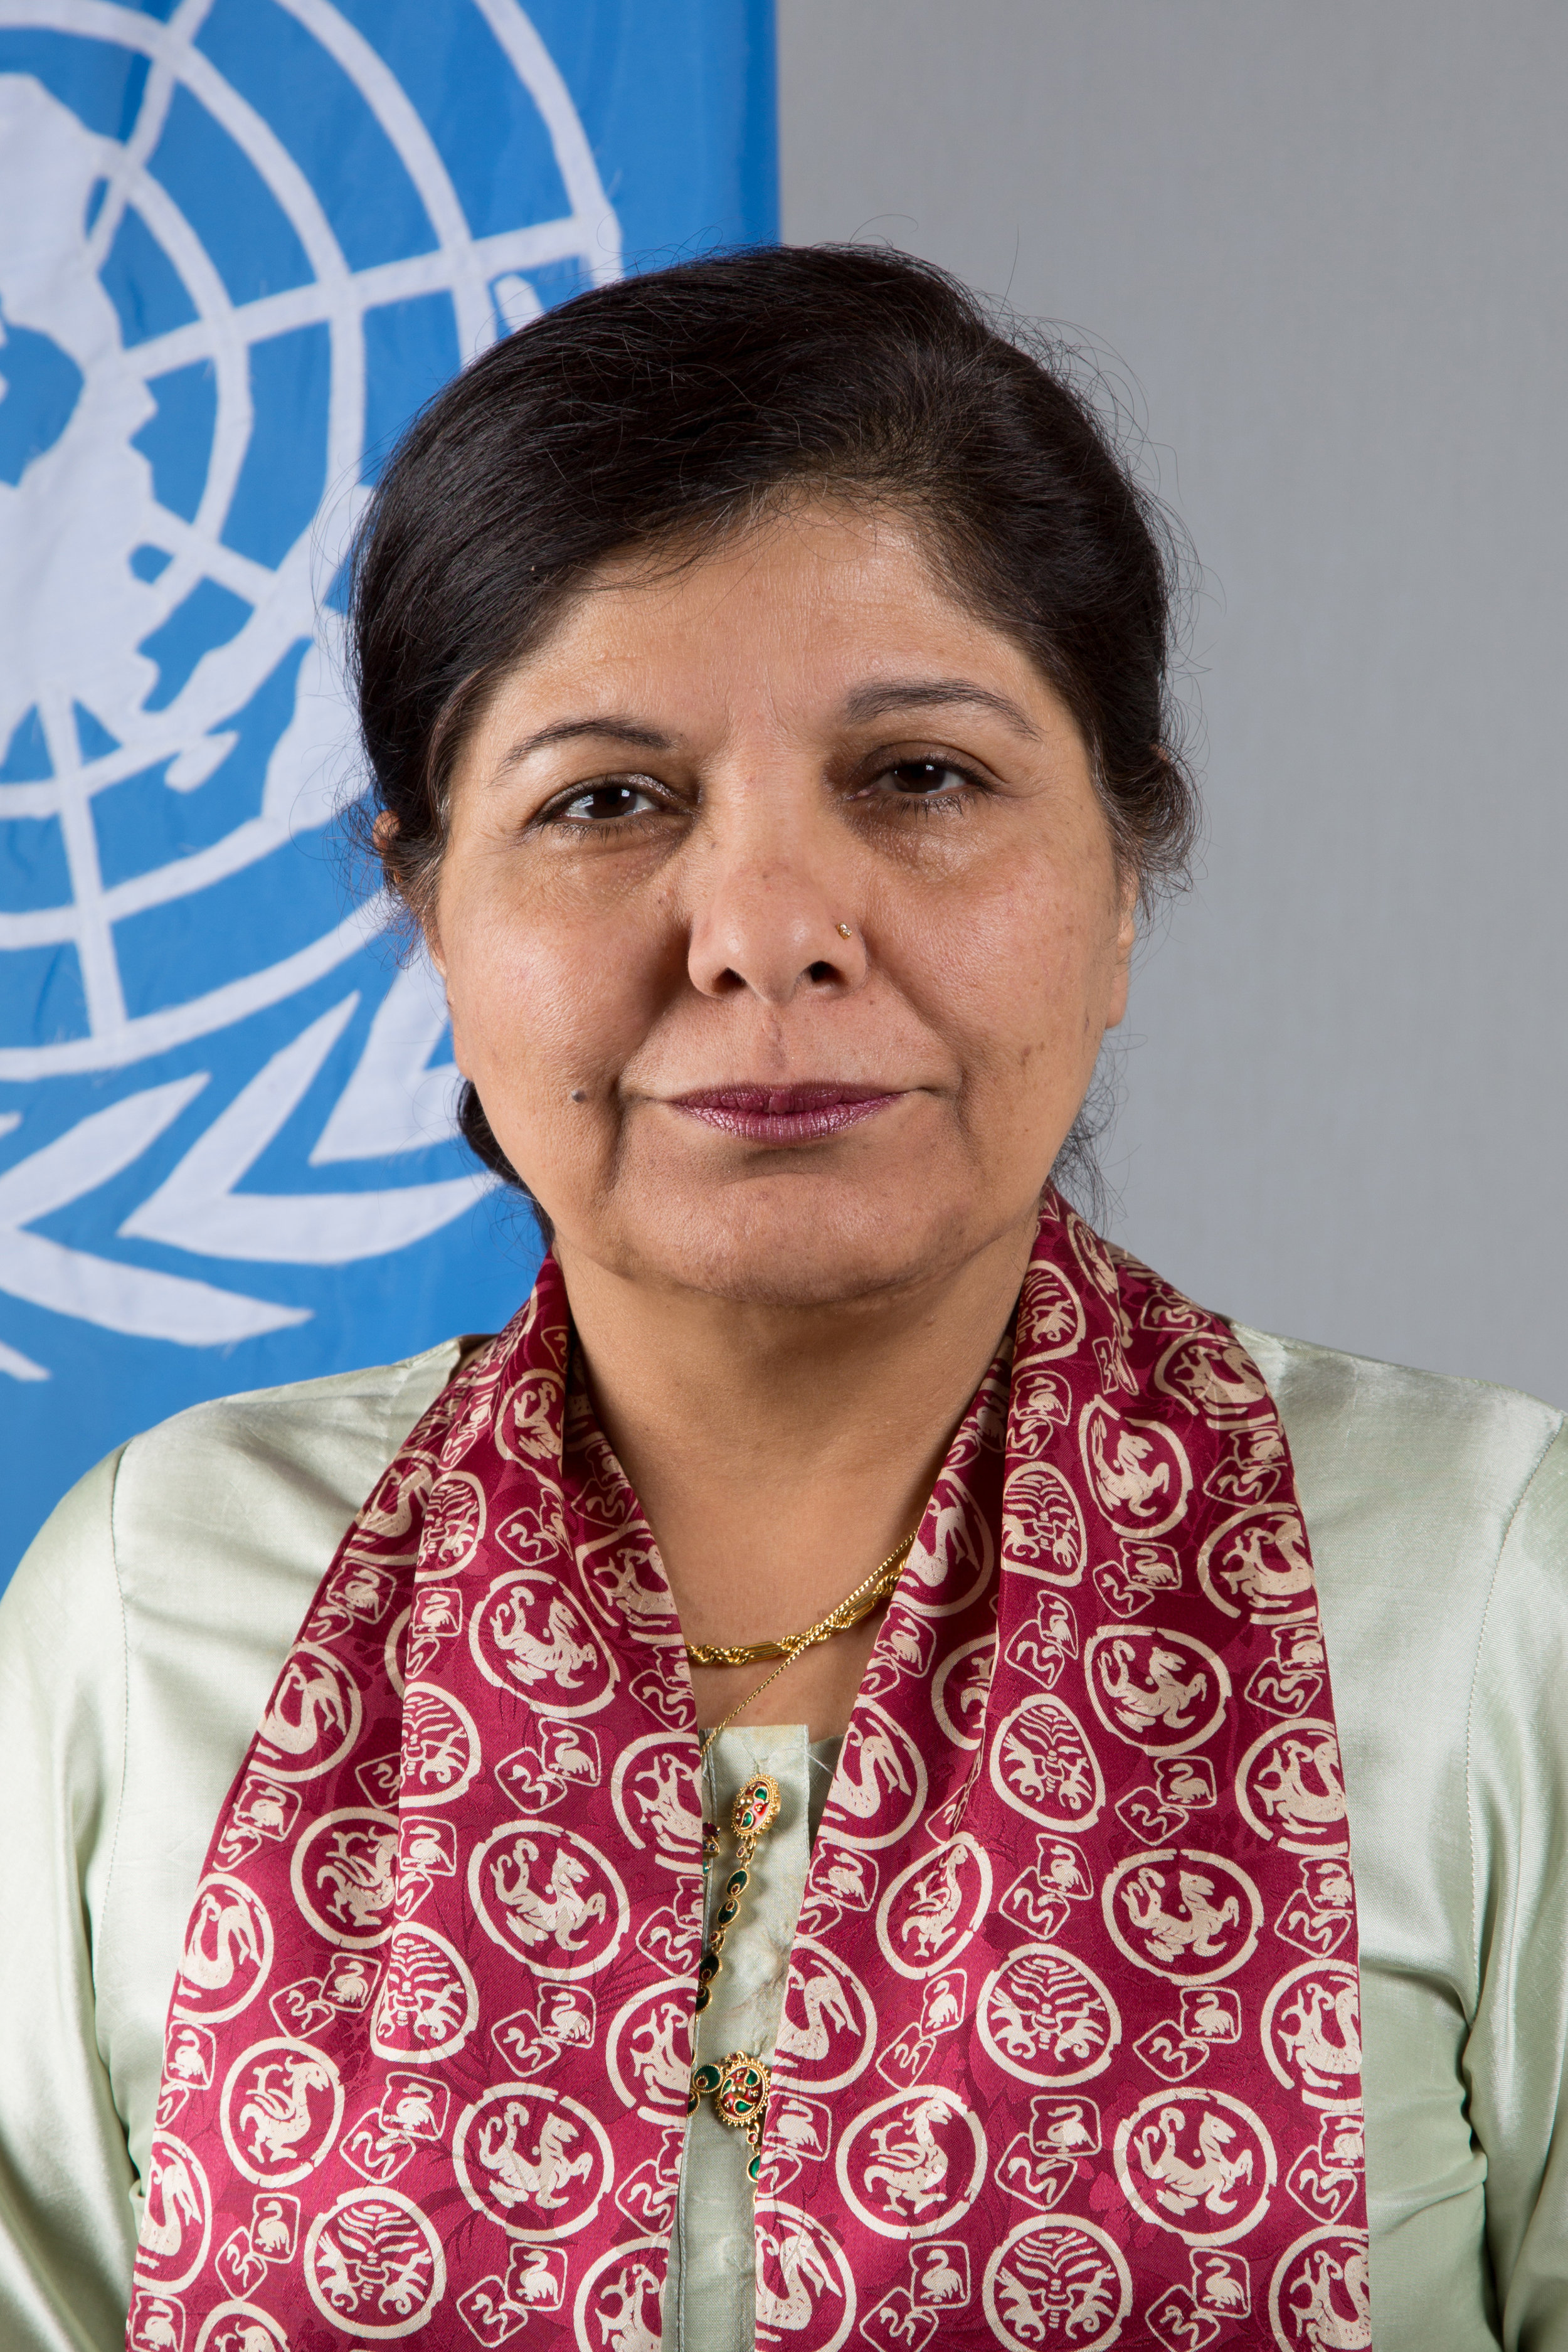 Ms. Shamshad Akhtar, has been appointed caretaker Finance Minister of Pakistan